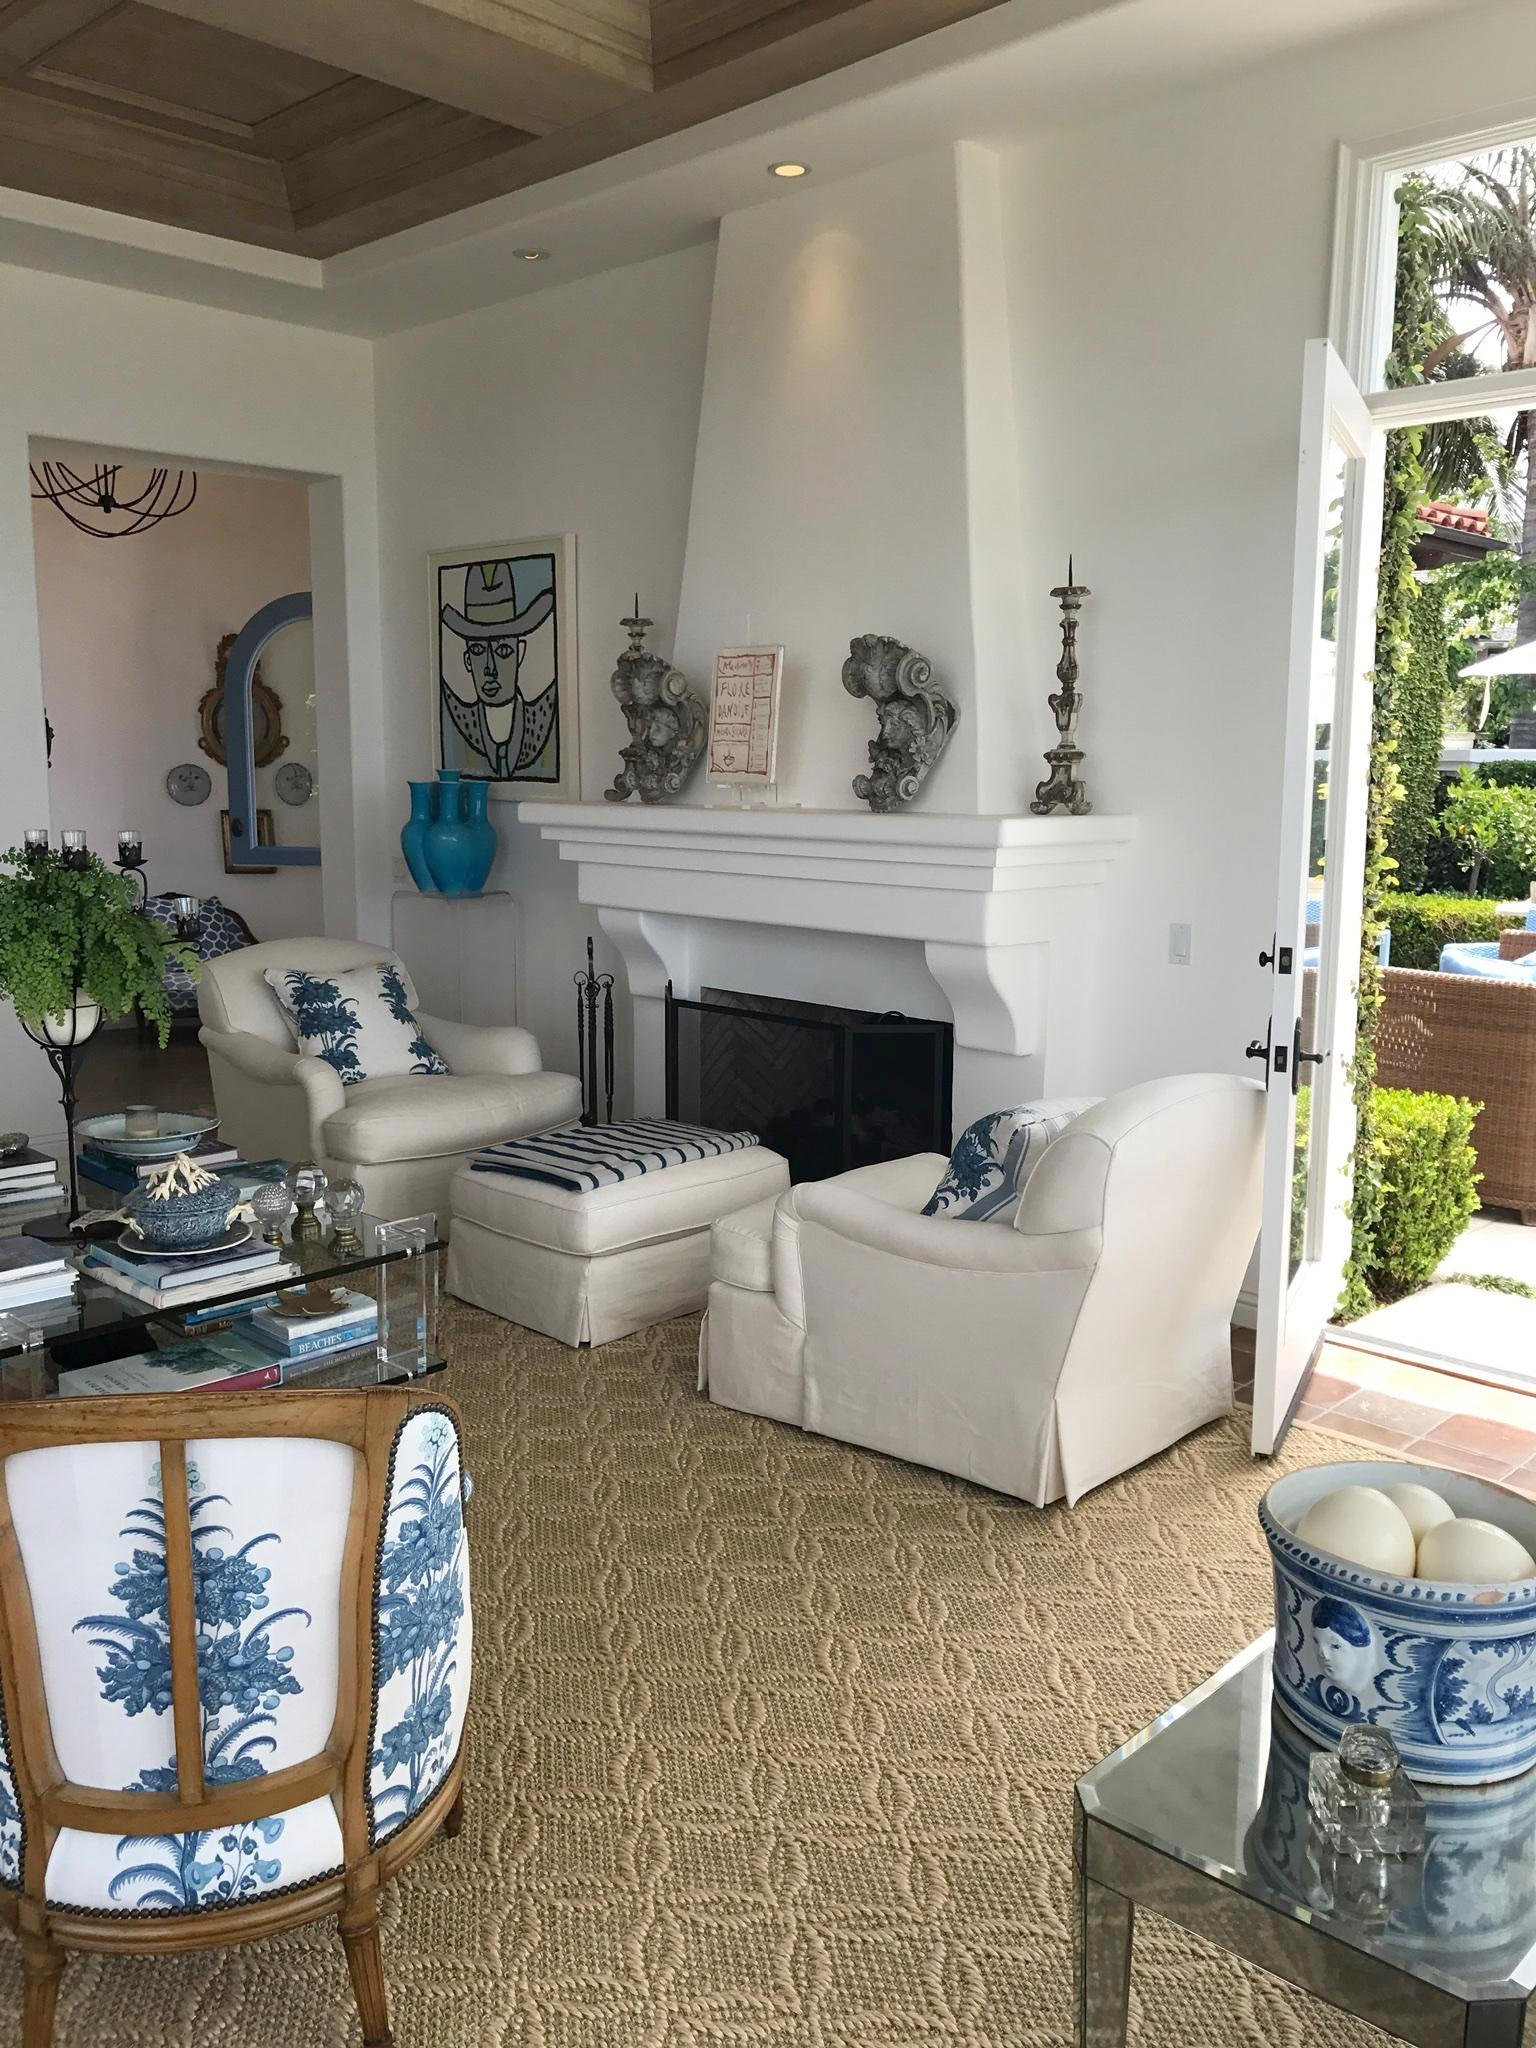 Laguna Beach living room design with French style chairs and fireplace.